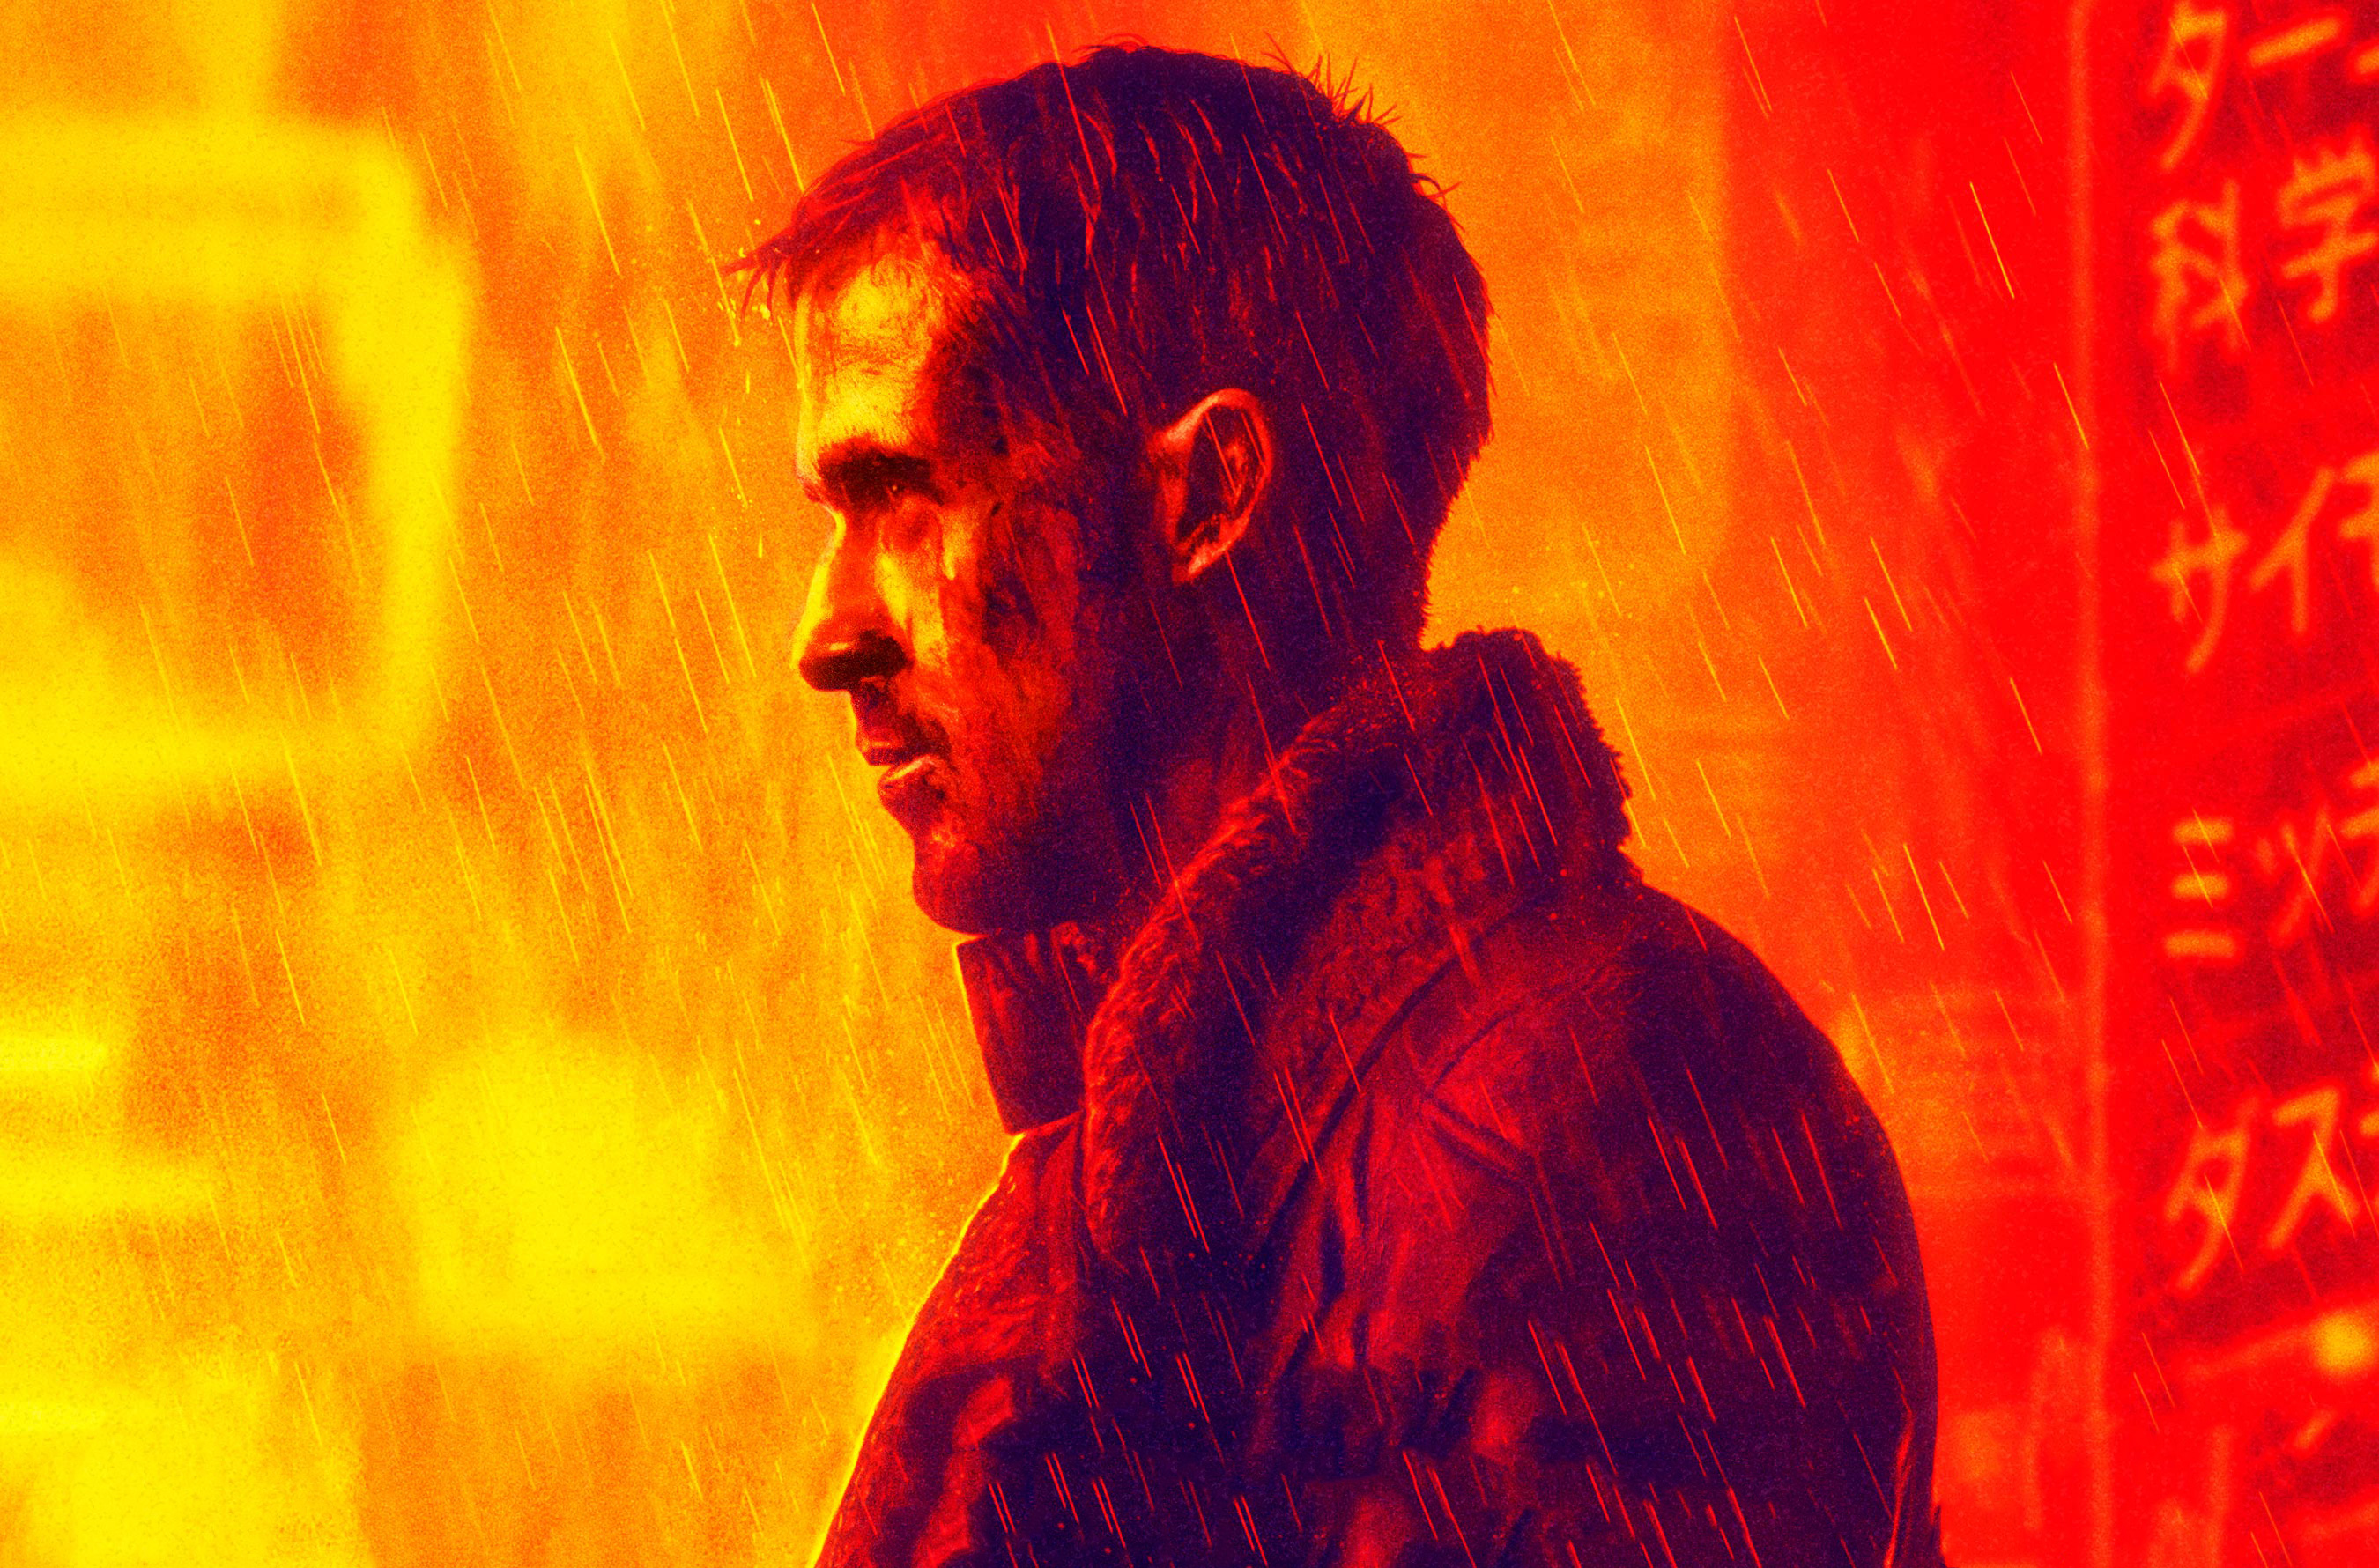 Ryan Gosling Blade Runner 2049, HD Movies, 4k Wallpapers